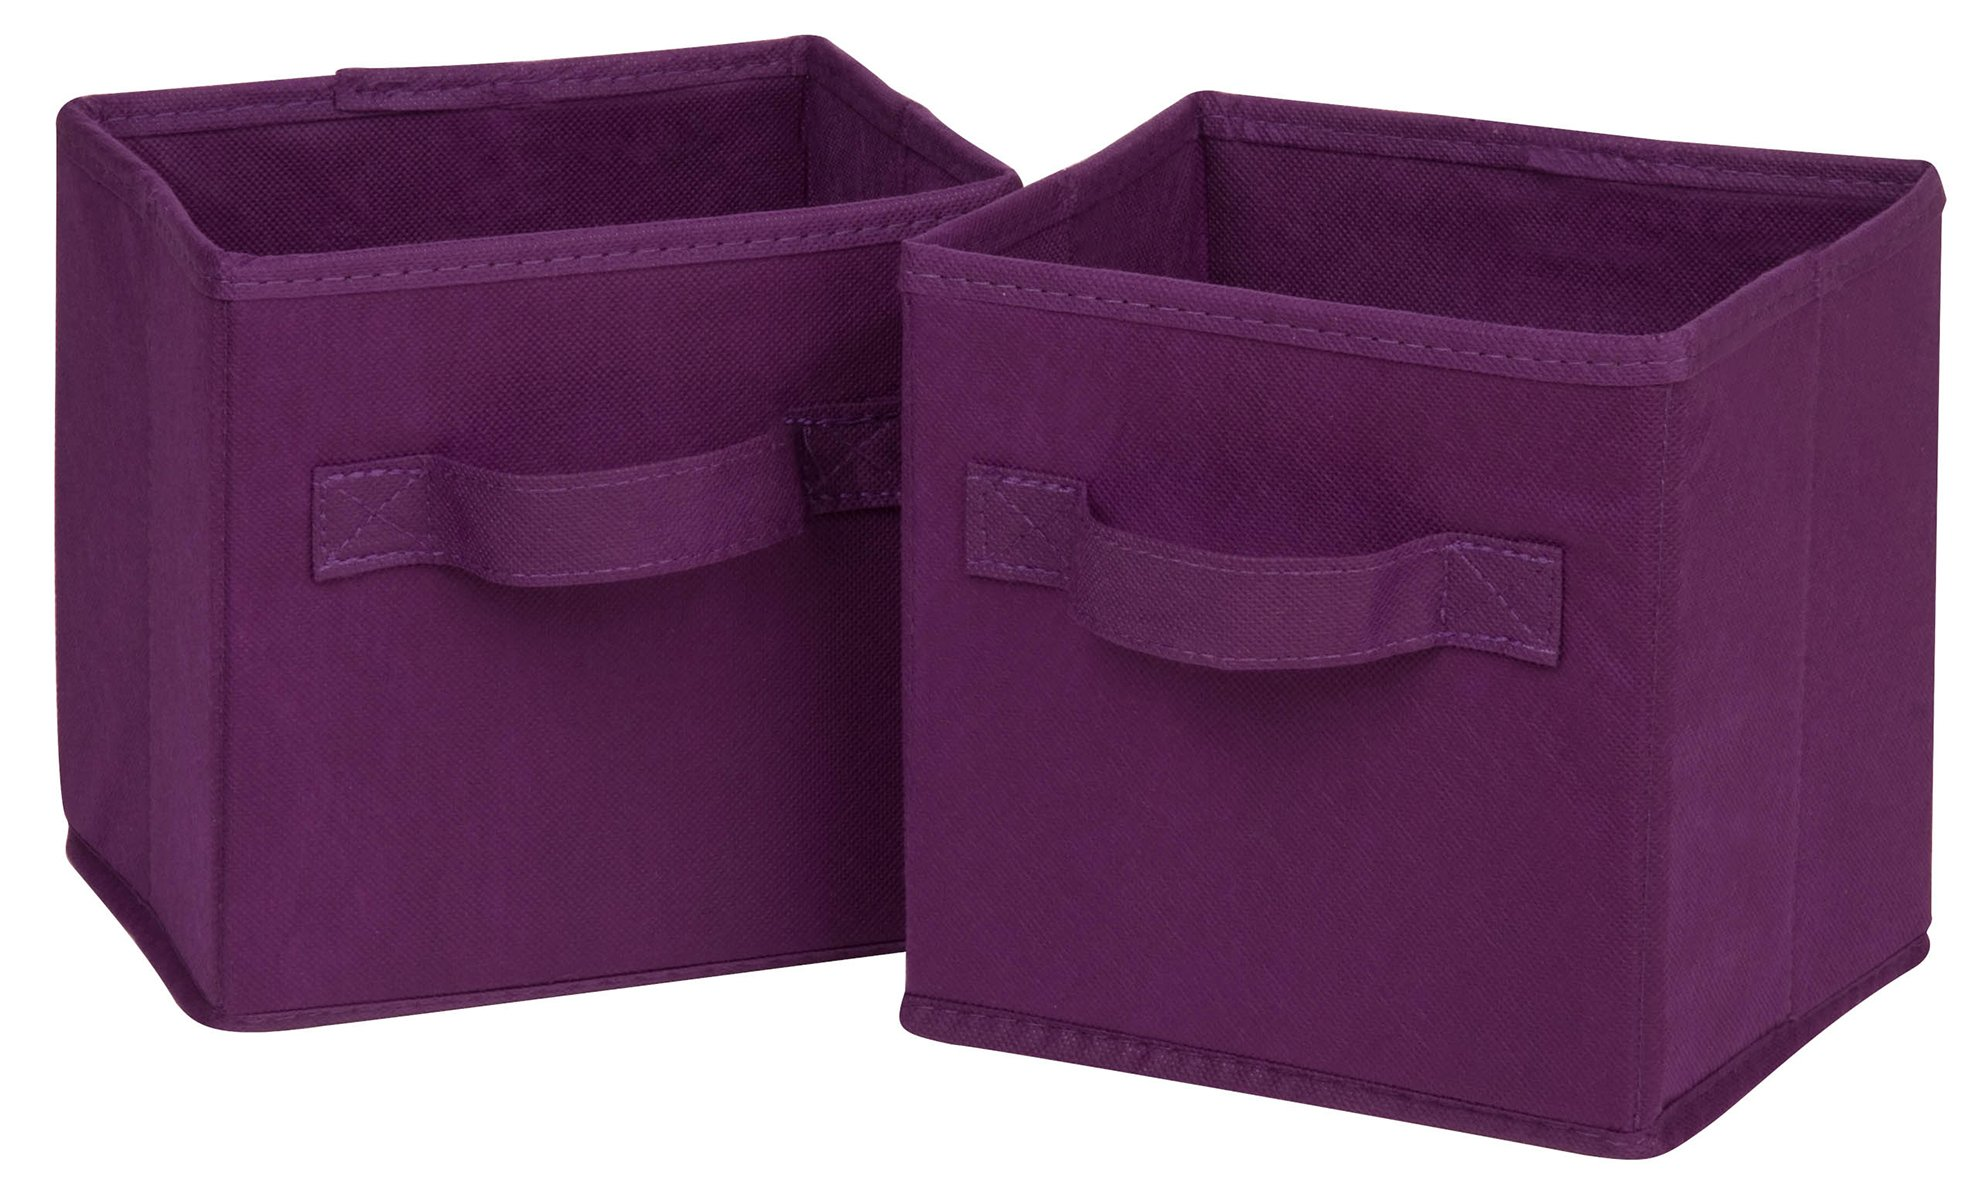 Honey-Can-Do SFT-02088 Mini Soft Fabric Storage Bin, 2-Pack, Purple, 7 by 7 by 5.75-Inch